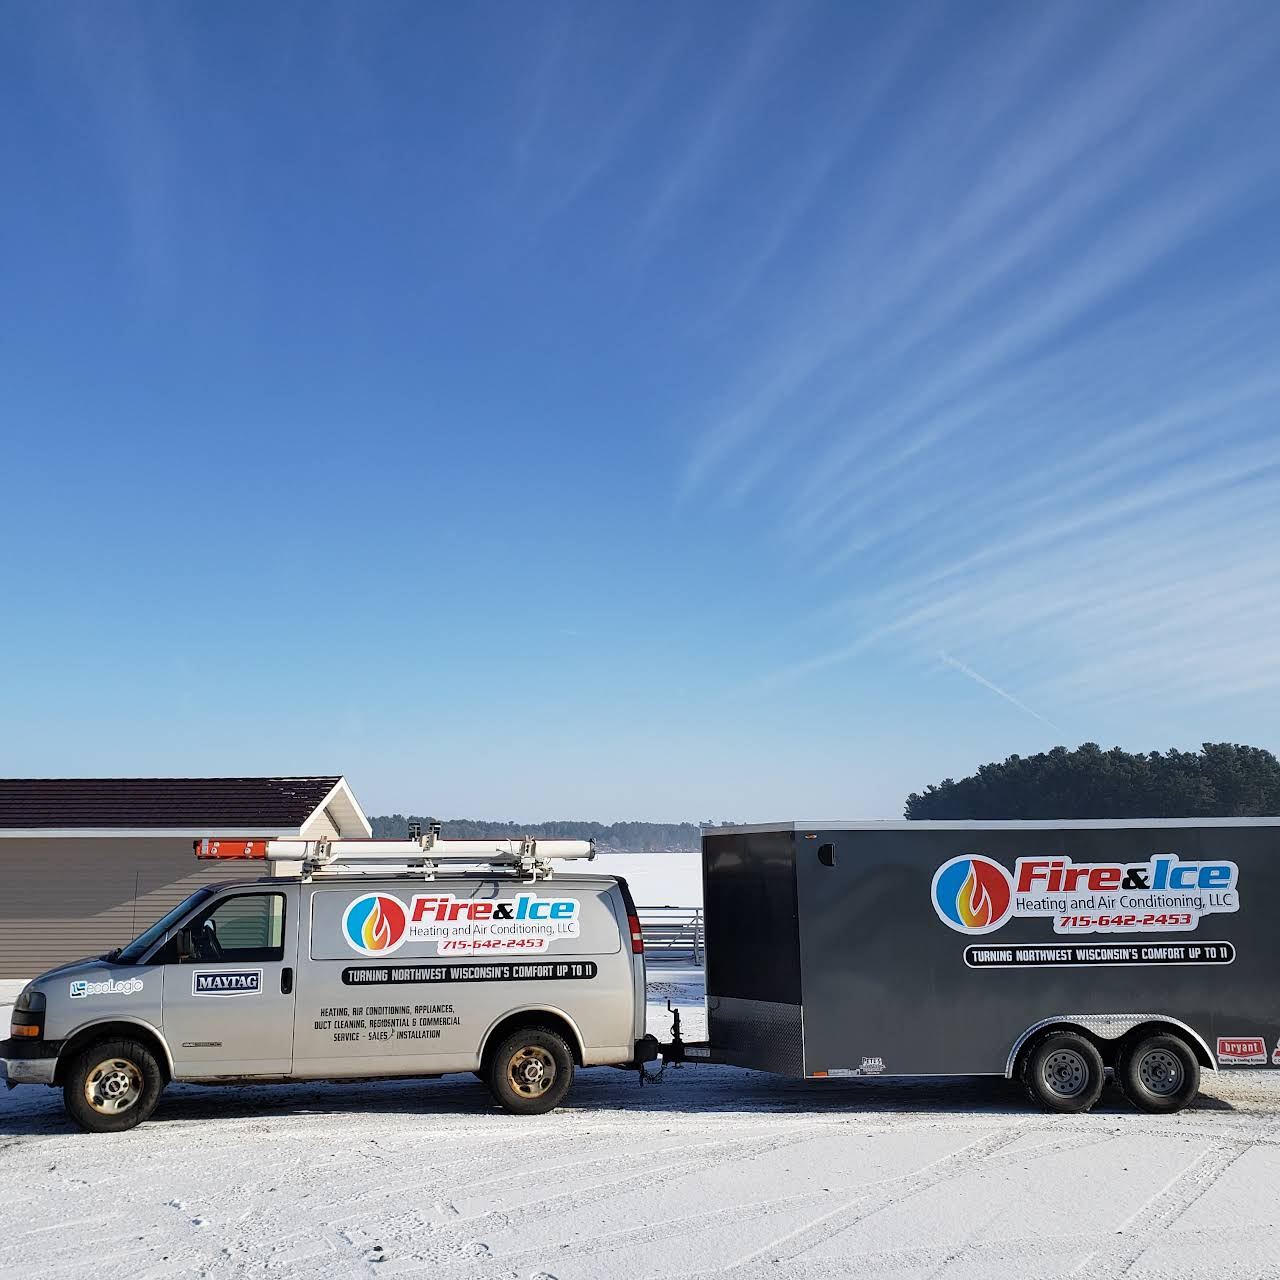 Fire & Ice Heating and Air Conditioning, LLC - Residential